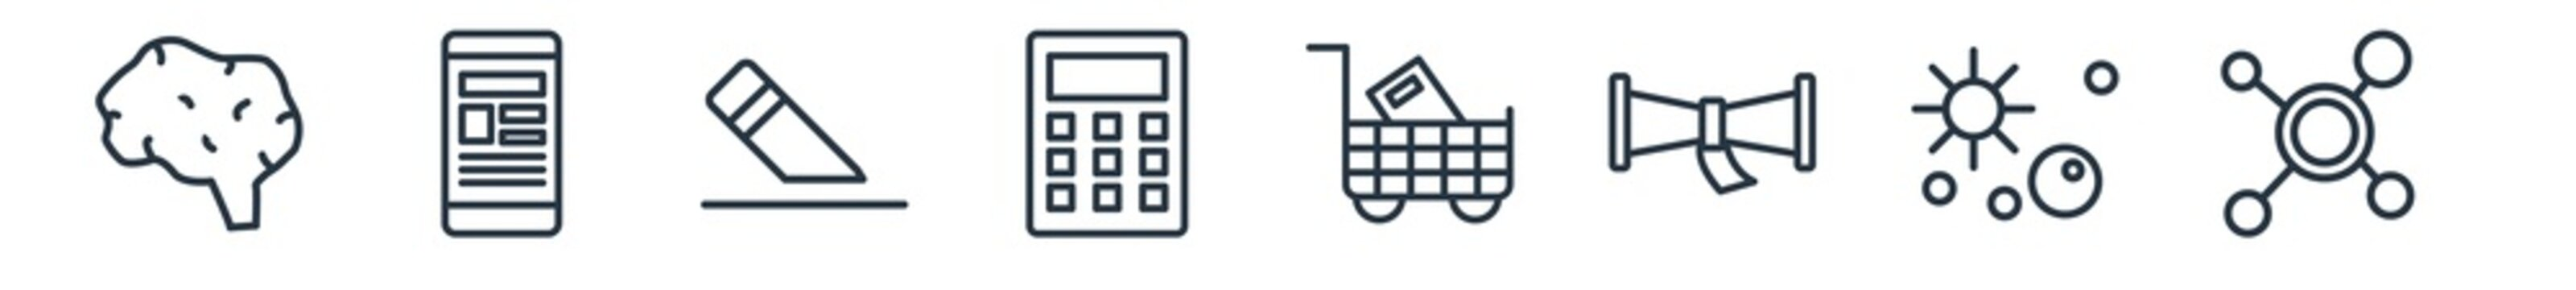 linear set of education outline icons. line vector icons such as human brain, smartphone app, eraser, small calculator, shopping cart, virus vector illustration.